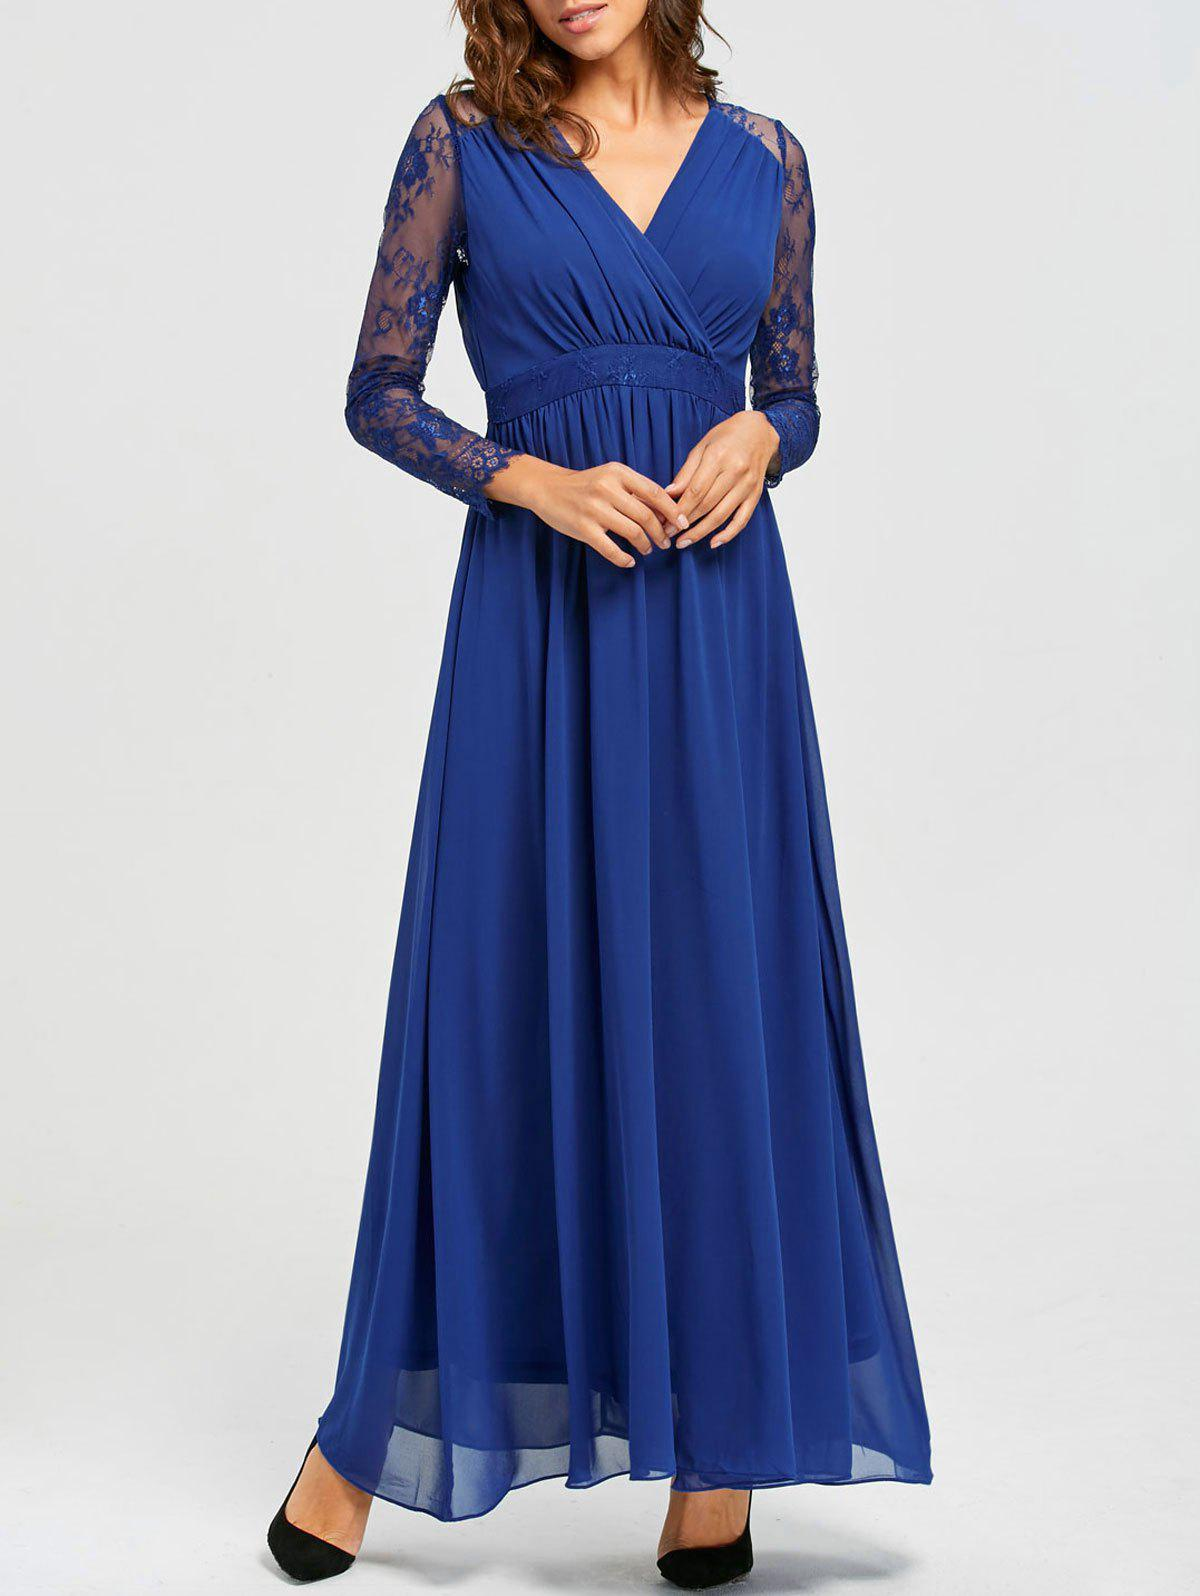 Lace Long Sleeve V-neck Floor Length Dress - BLUE L